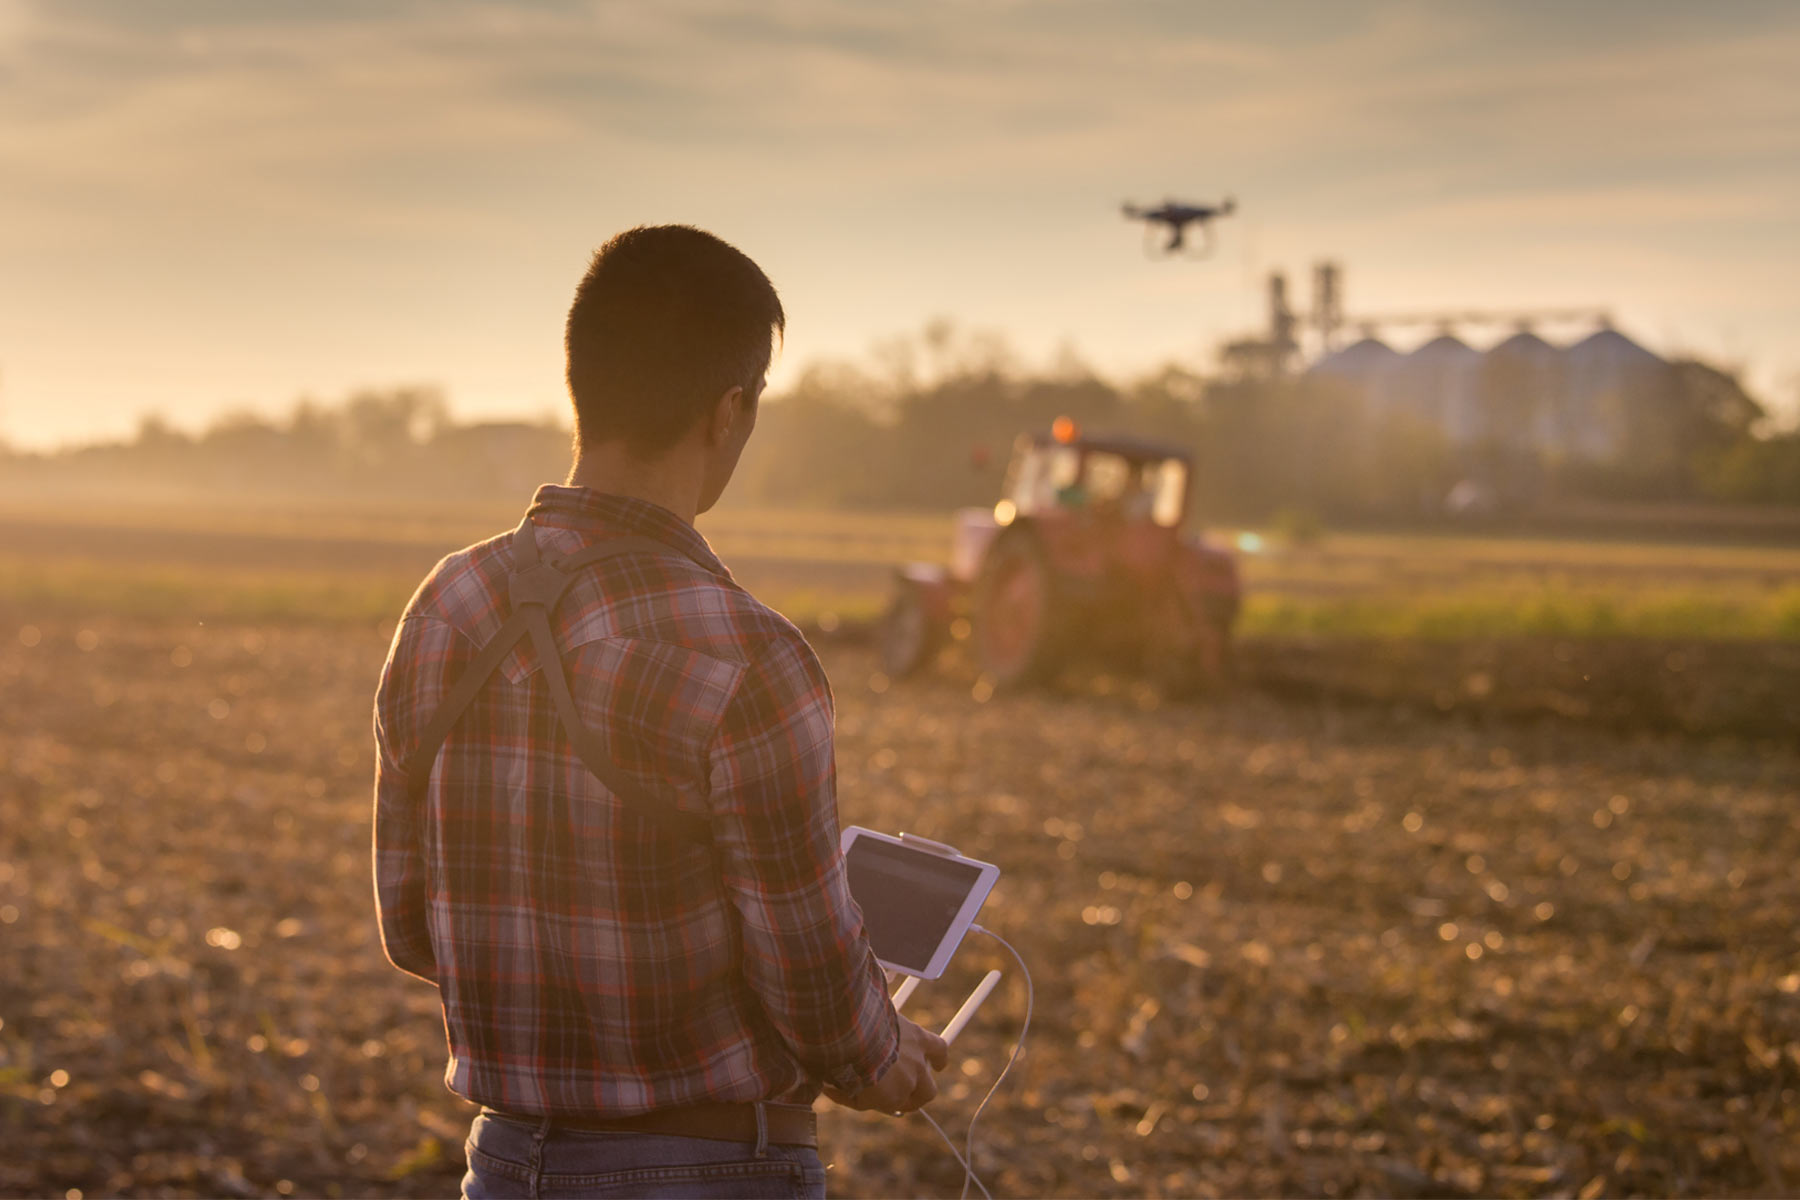 farmer using tablet and drone in a field